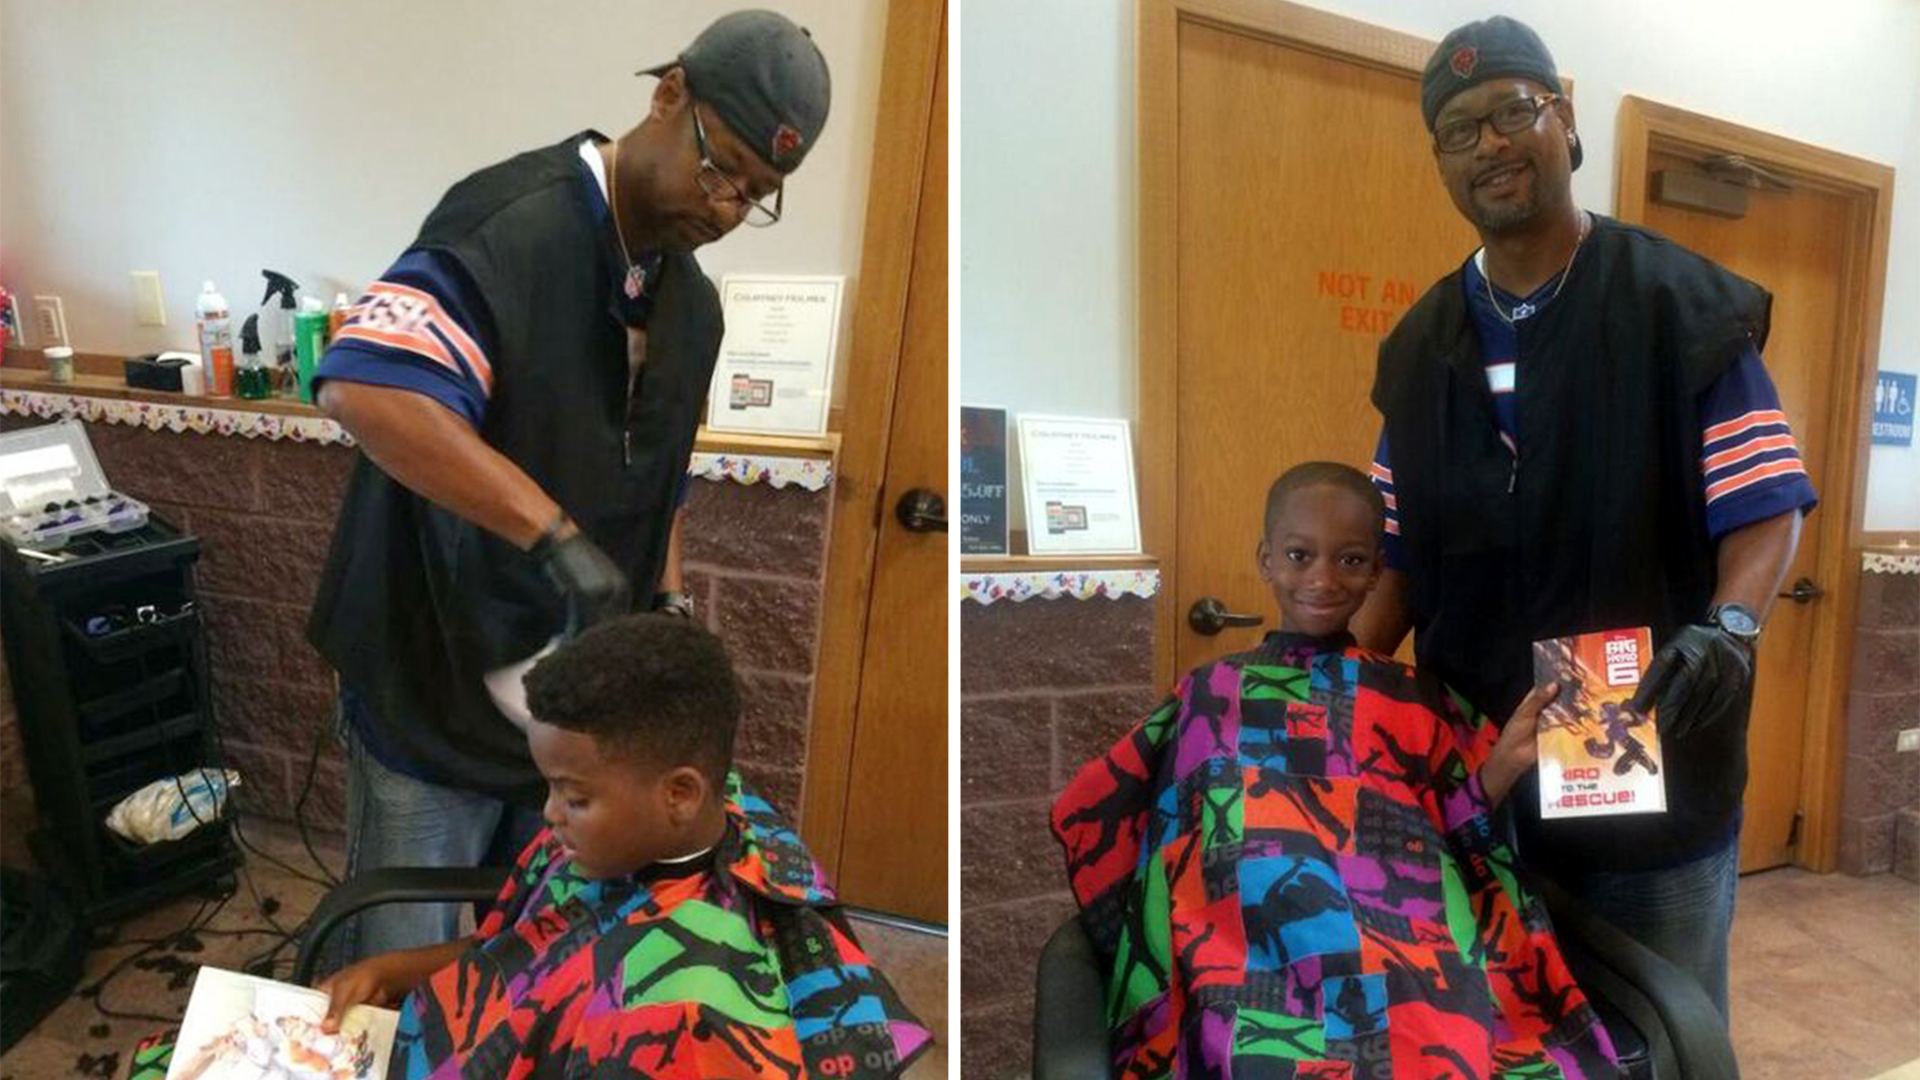 Meet Courtney Holmes the barber who gave kids free